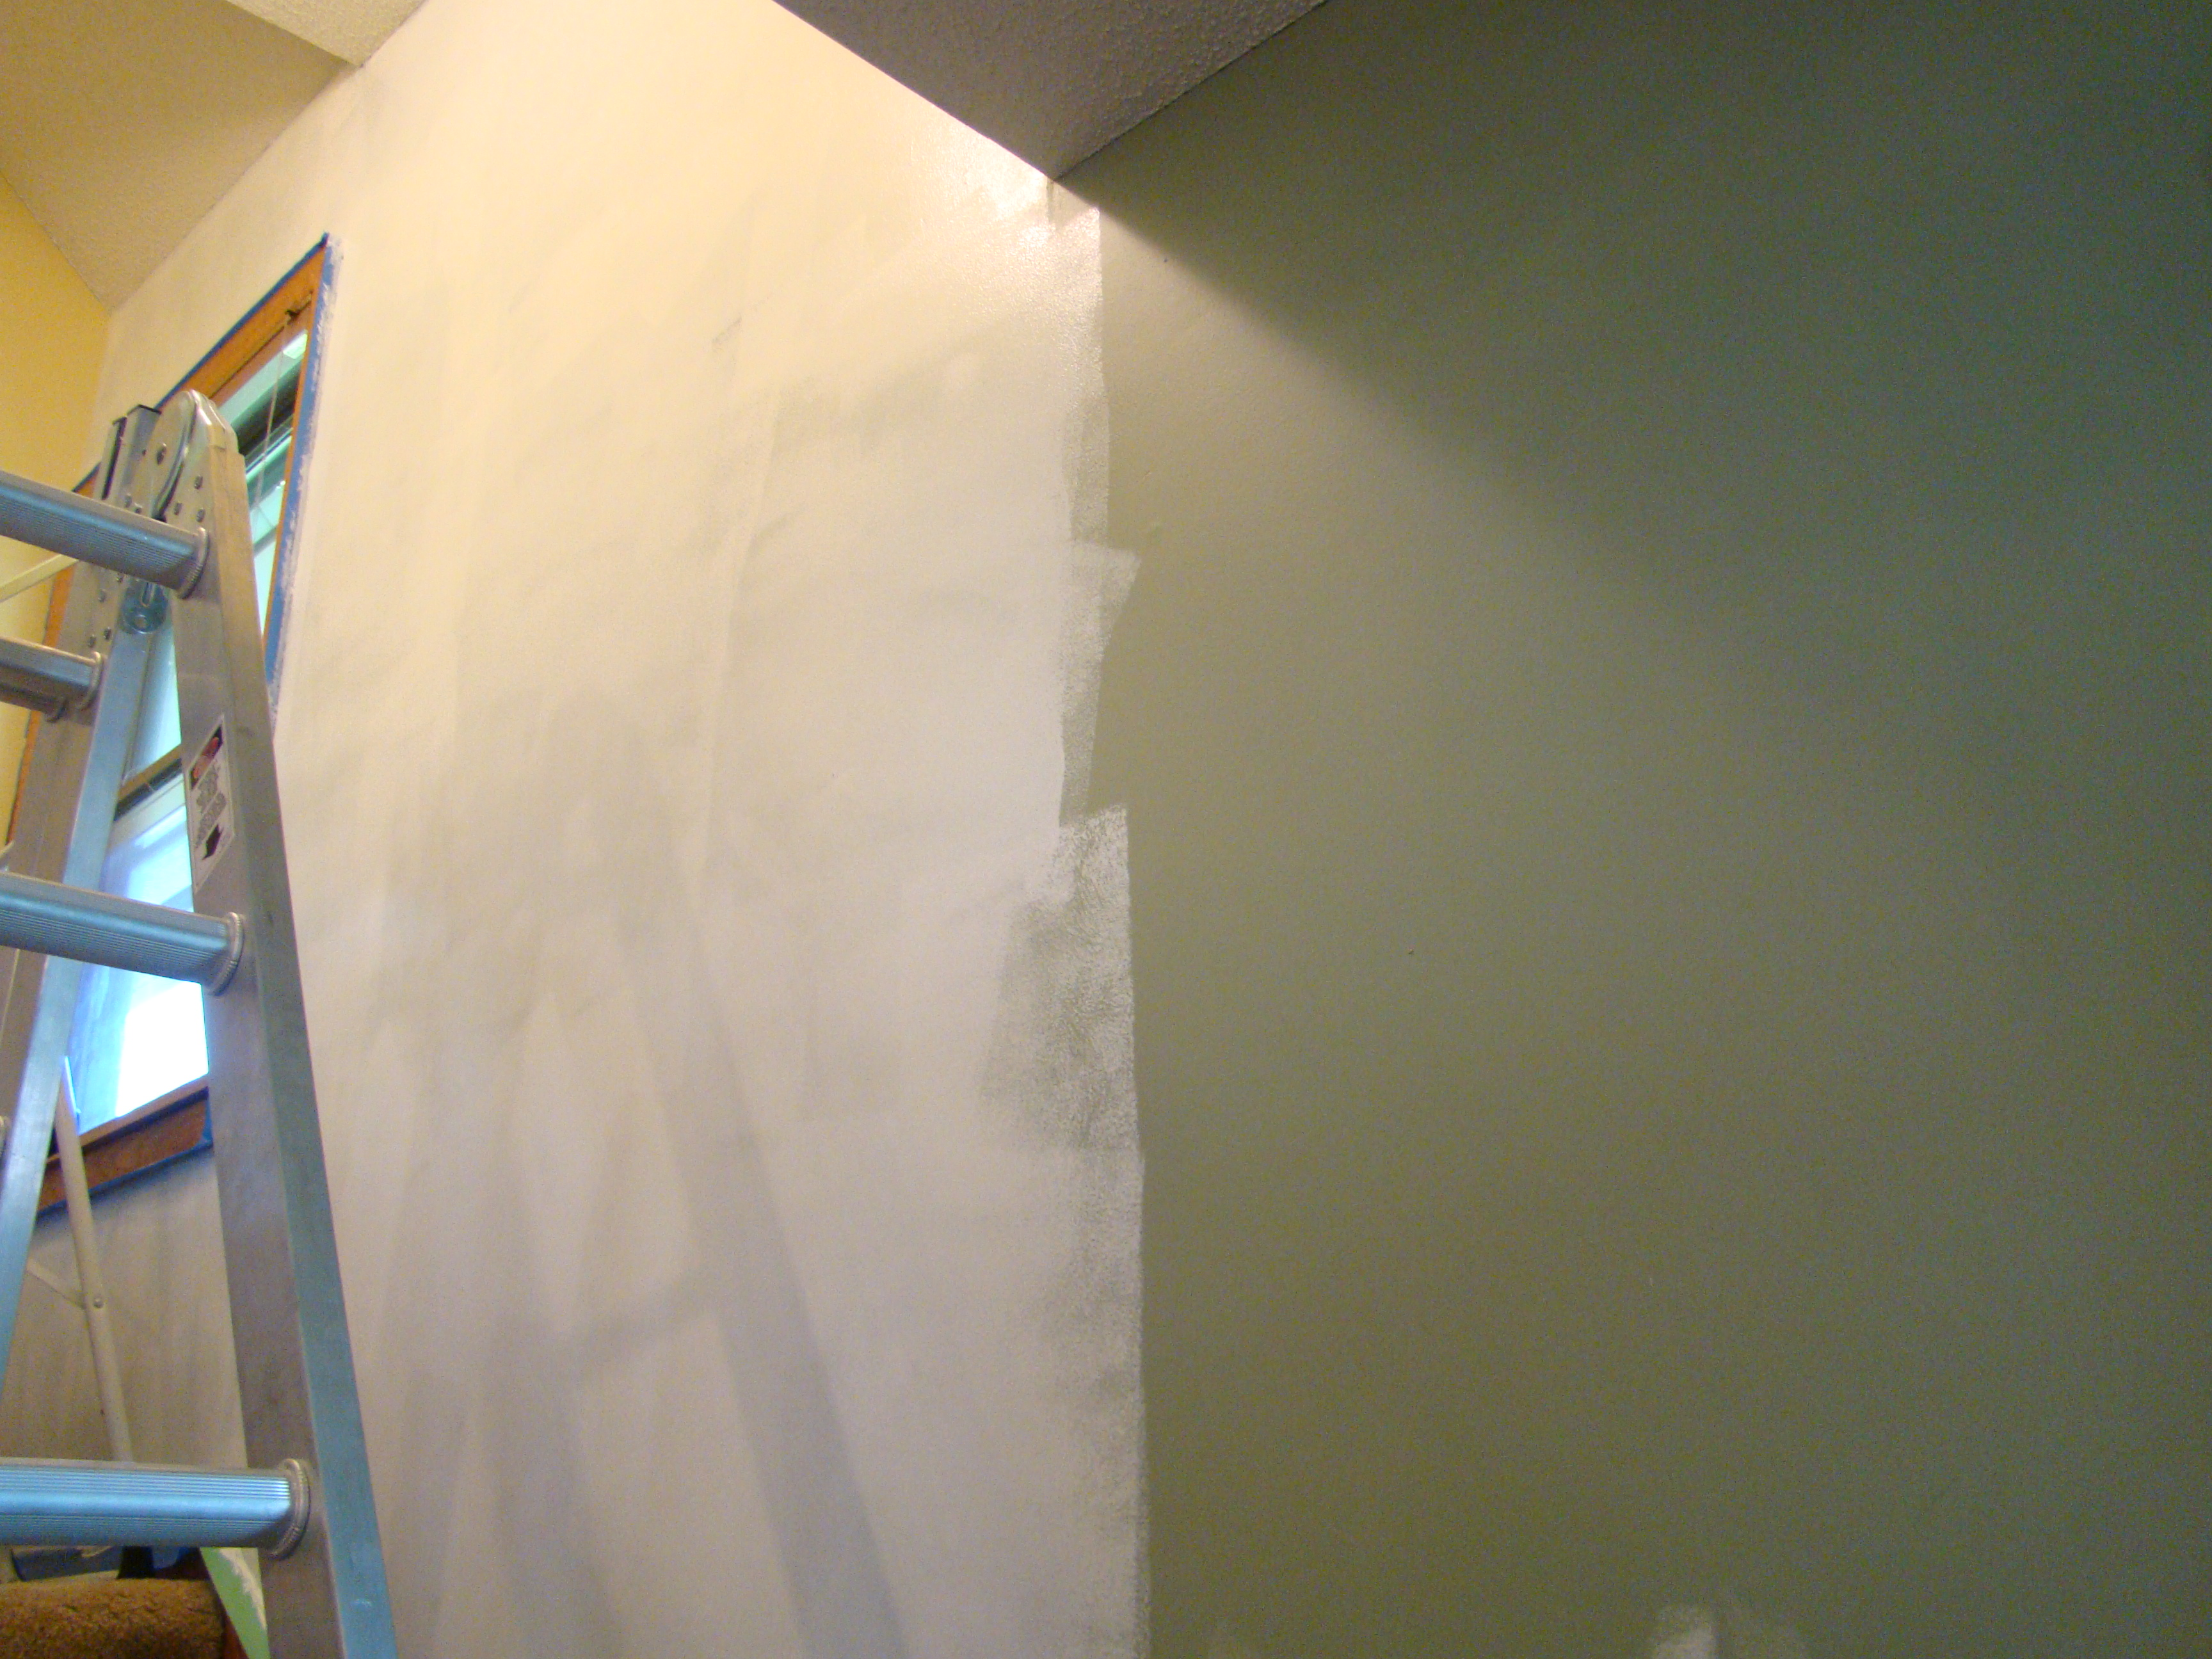 Painting Prep How To Do It Properly A Little Design Help